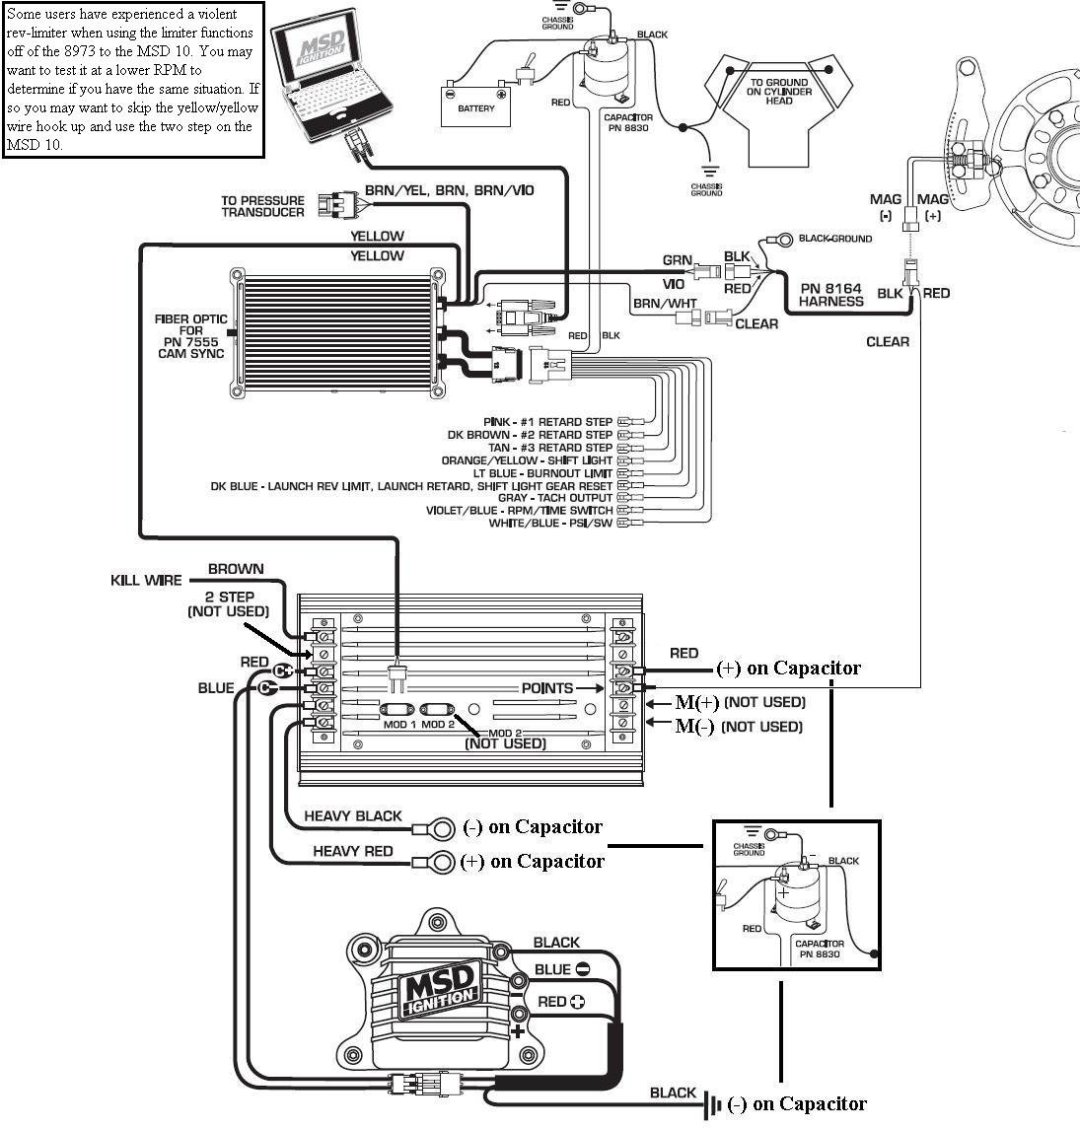 pertronix ignition with msd 6 wiring diagram with Ford Ballast Resistor Wiring on 12 Volt Ignition 4 Position Wiring Diagram together with Motorcycle Tach Wiring Diagram furthermore Pertronix Wiring Schematic in addition 25 Msd Ignition Wiring Diagrams likewise Delco Remy Hei Distributor Wiring Diagram.